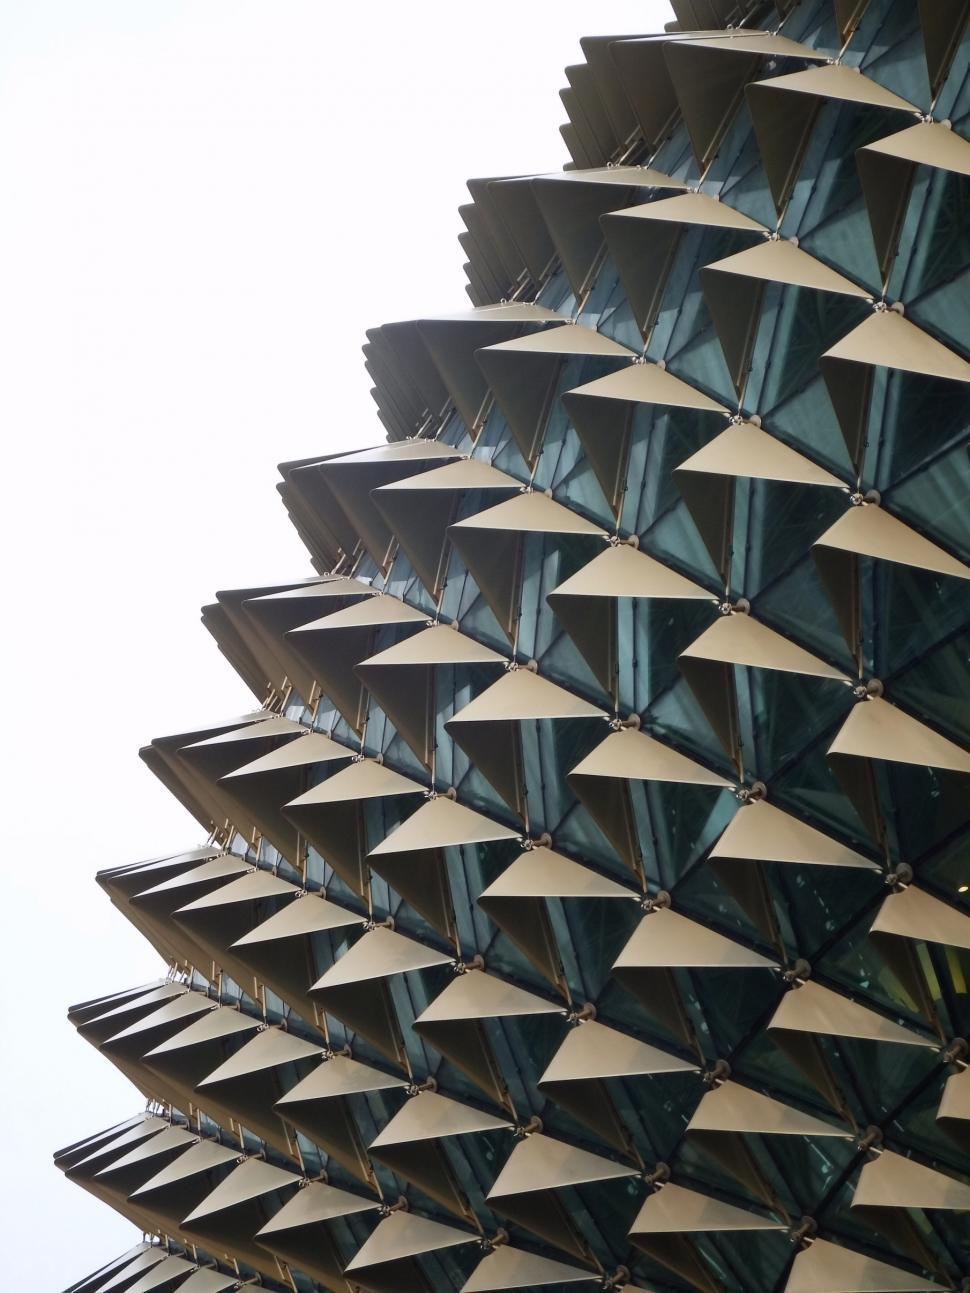 Download Free Stock HD Photo of Spiky Architecture  Online